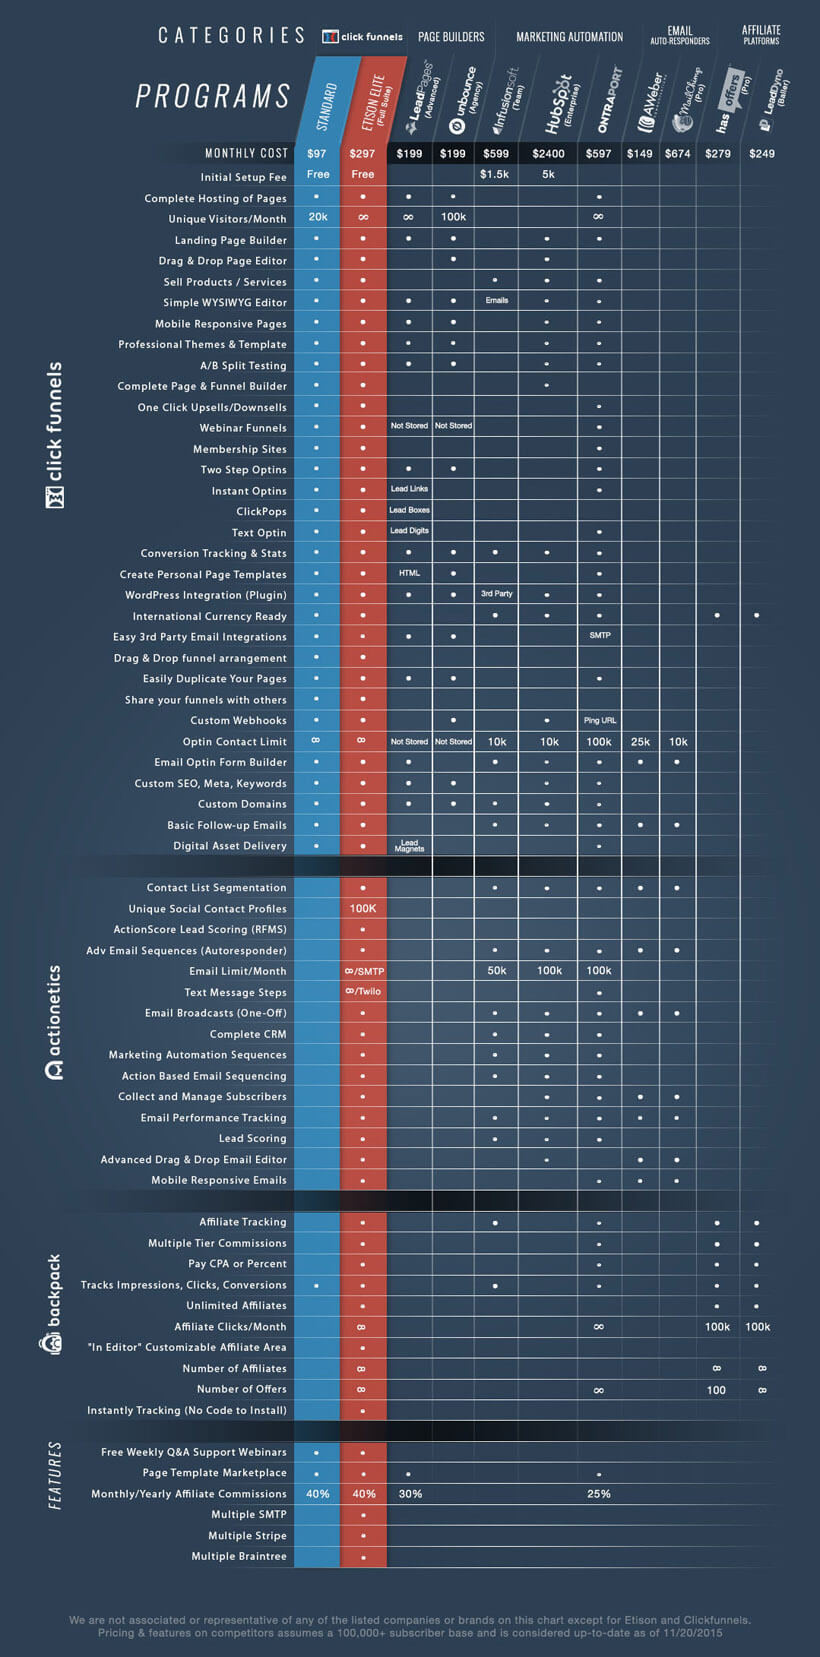 clickfunnels pricing comparion chart - ClickFunnels Pricing: Comparing ClickFunnels Startup vs Etison Suite